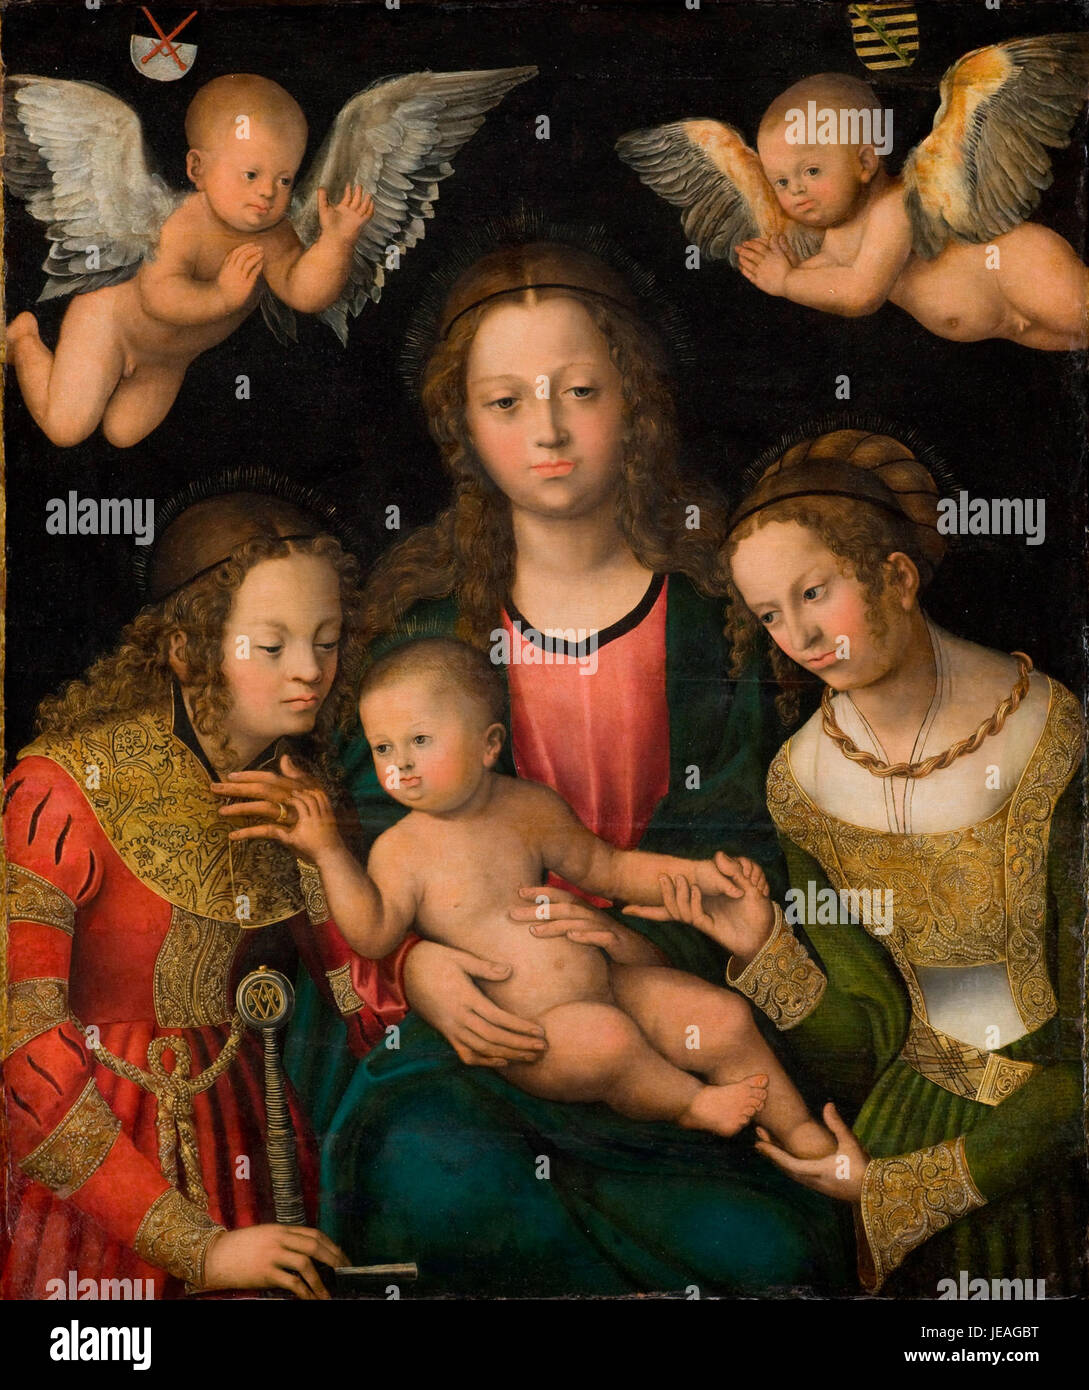 Cranach, Lucas (I) - Virgin and Child with the Saints Catherine and Barbara - Statens Museum for Kunst - Stock Image